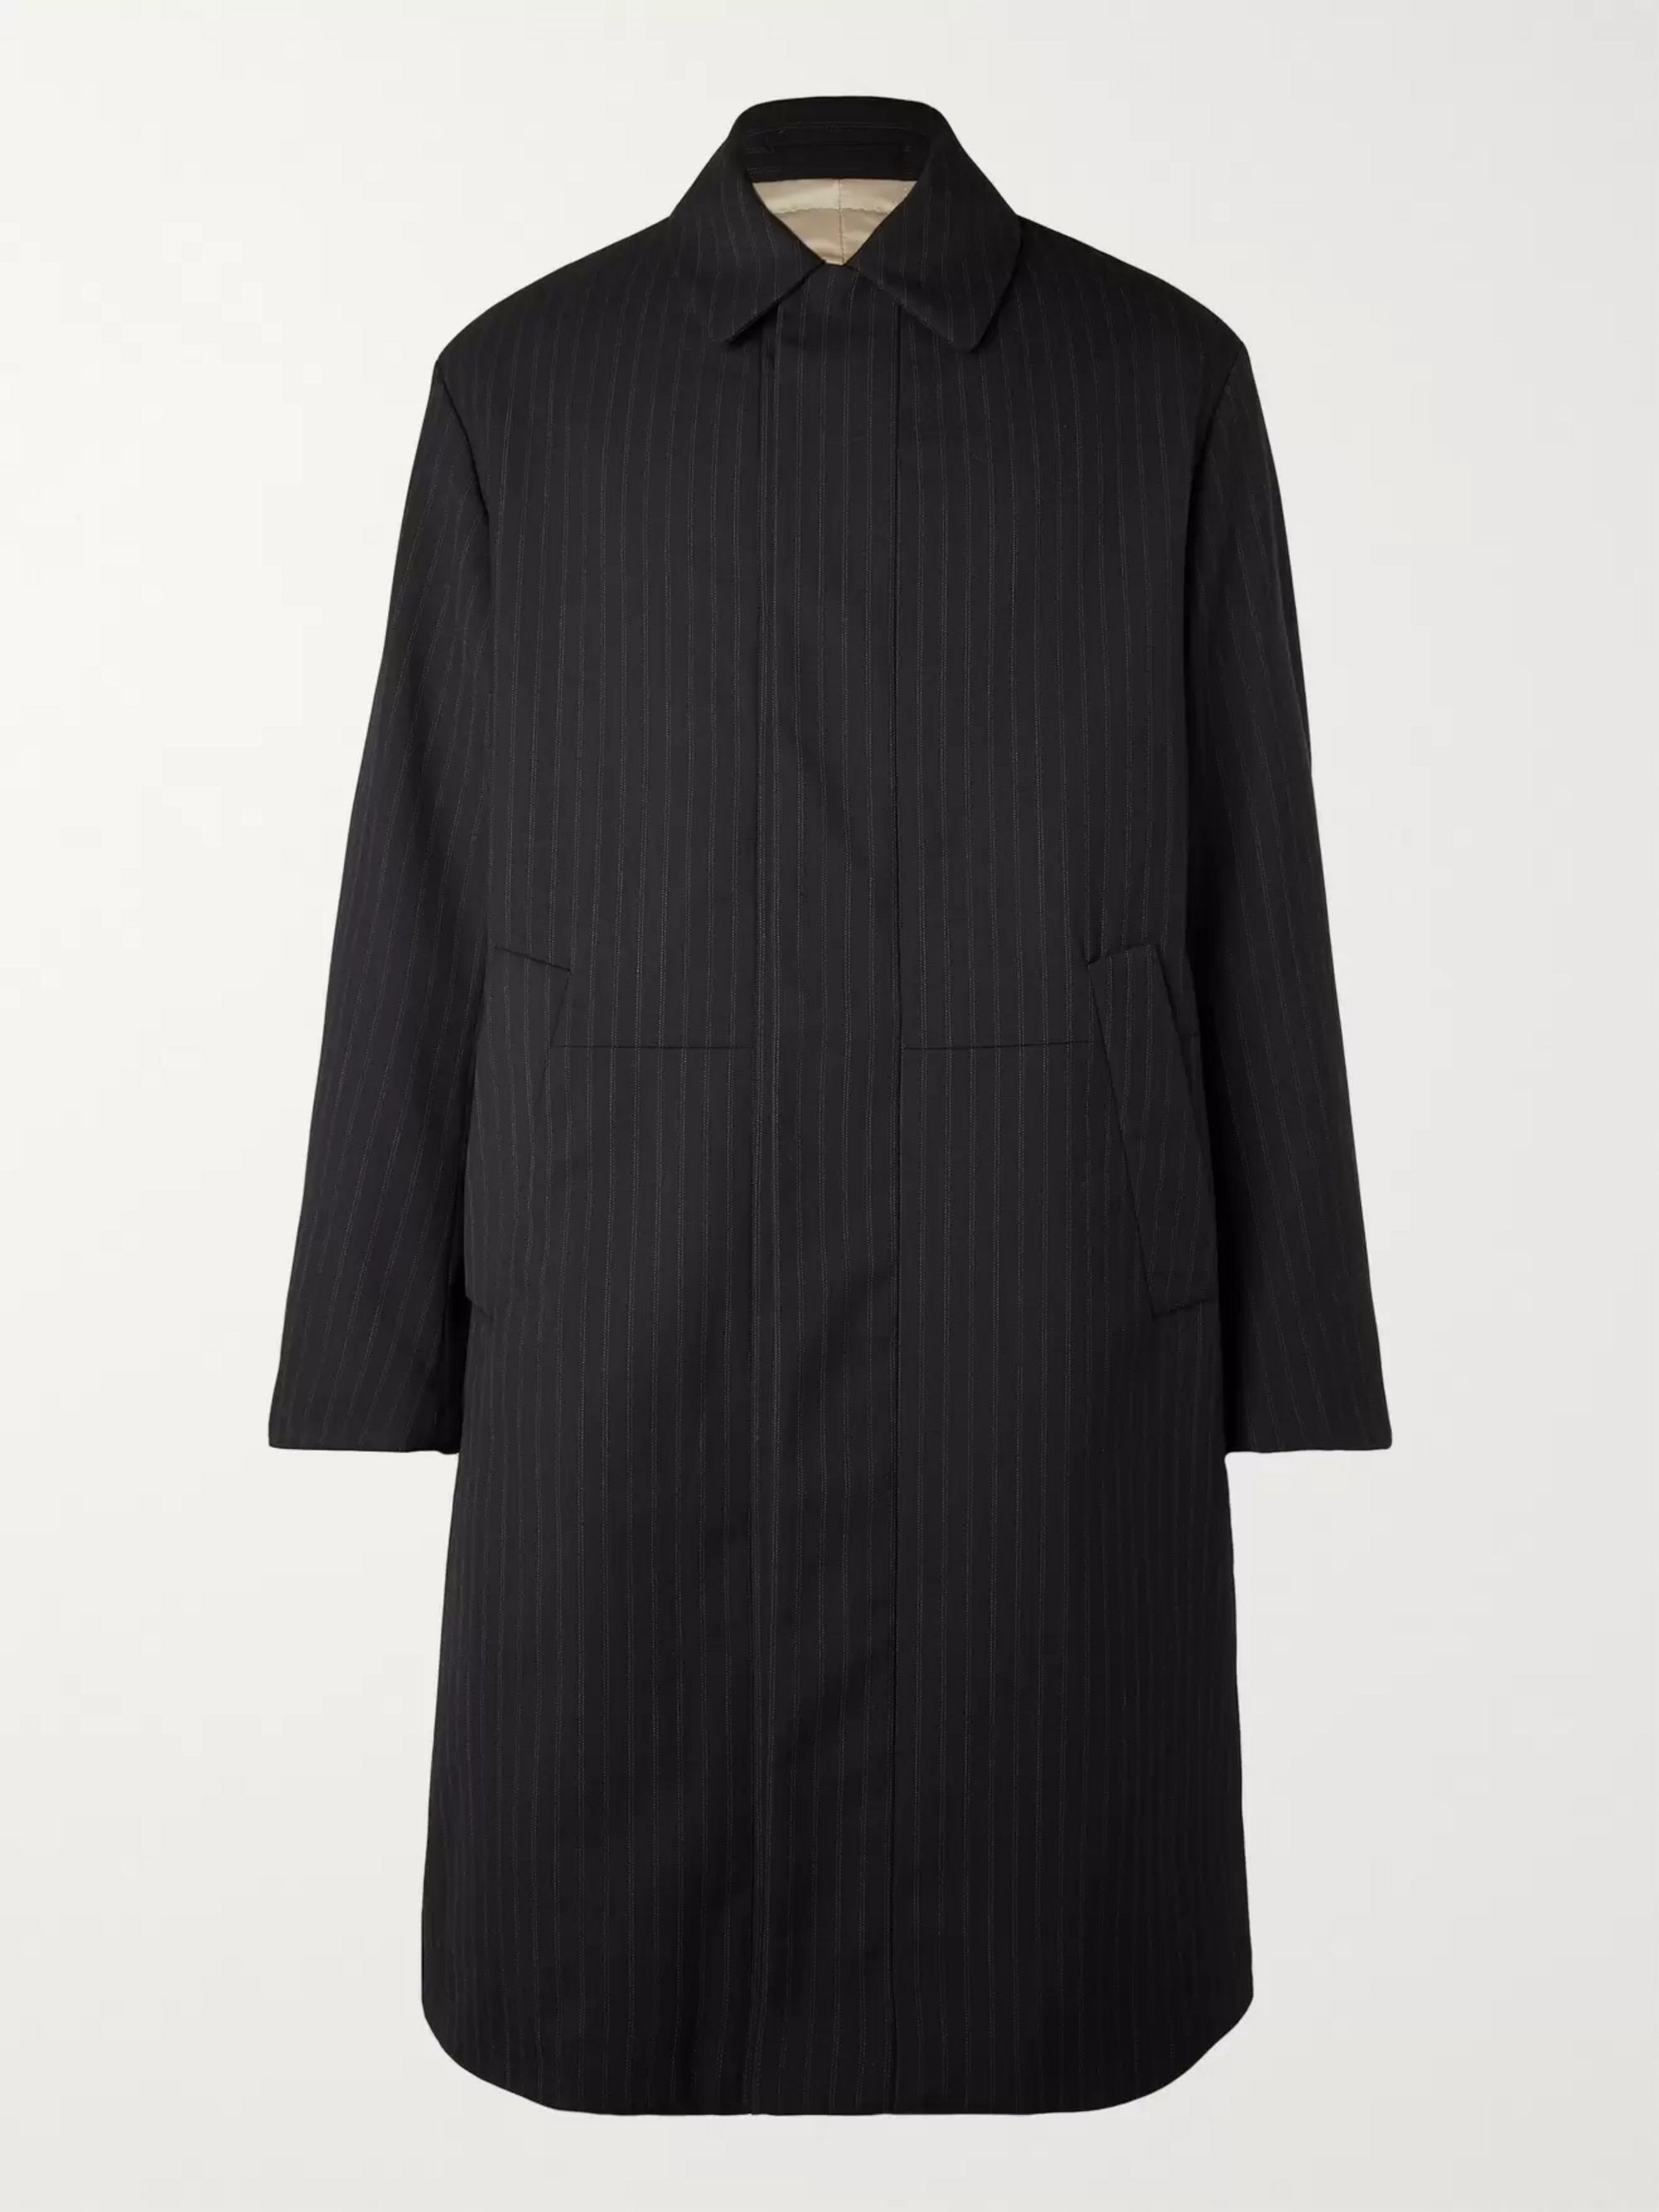 Padded Pinstriped Woven Coat by Dries Van Noten